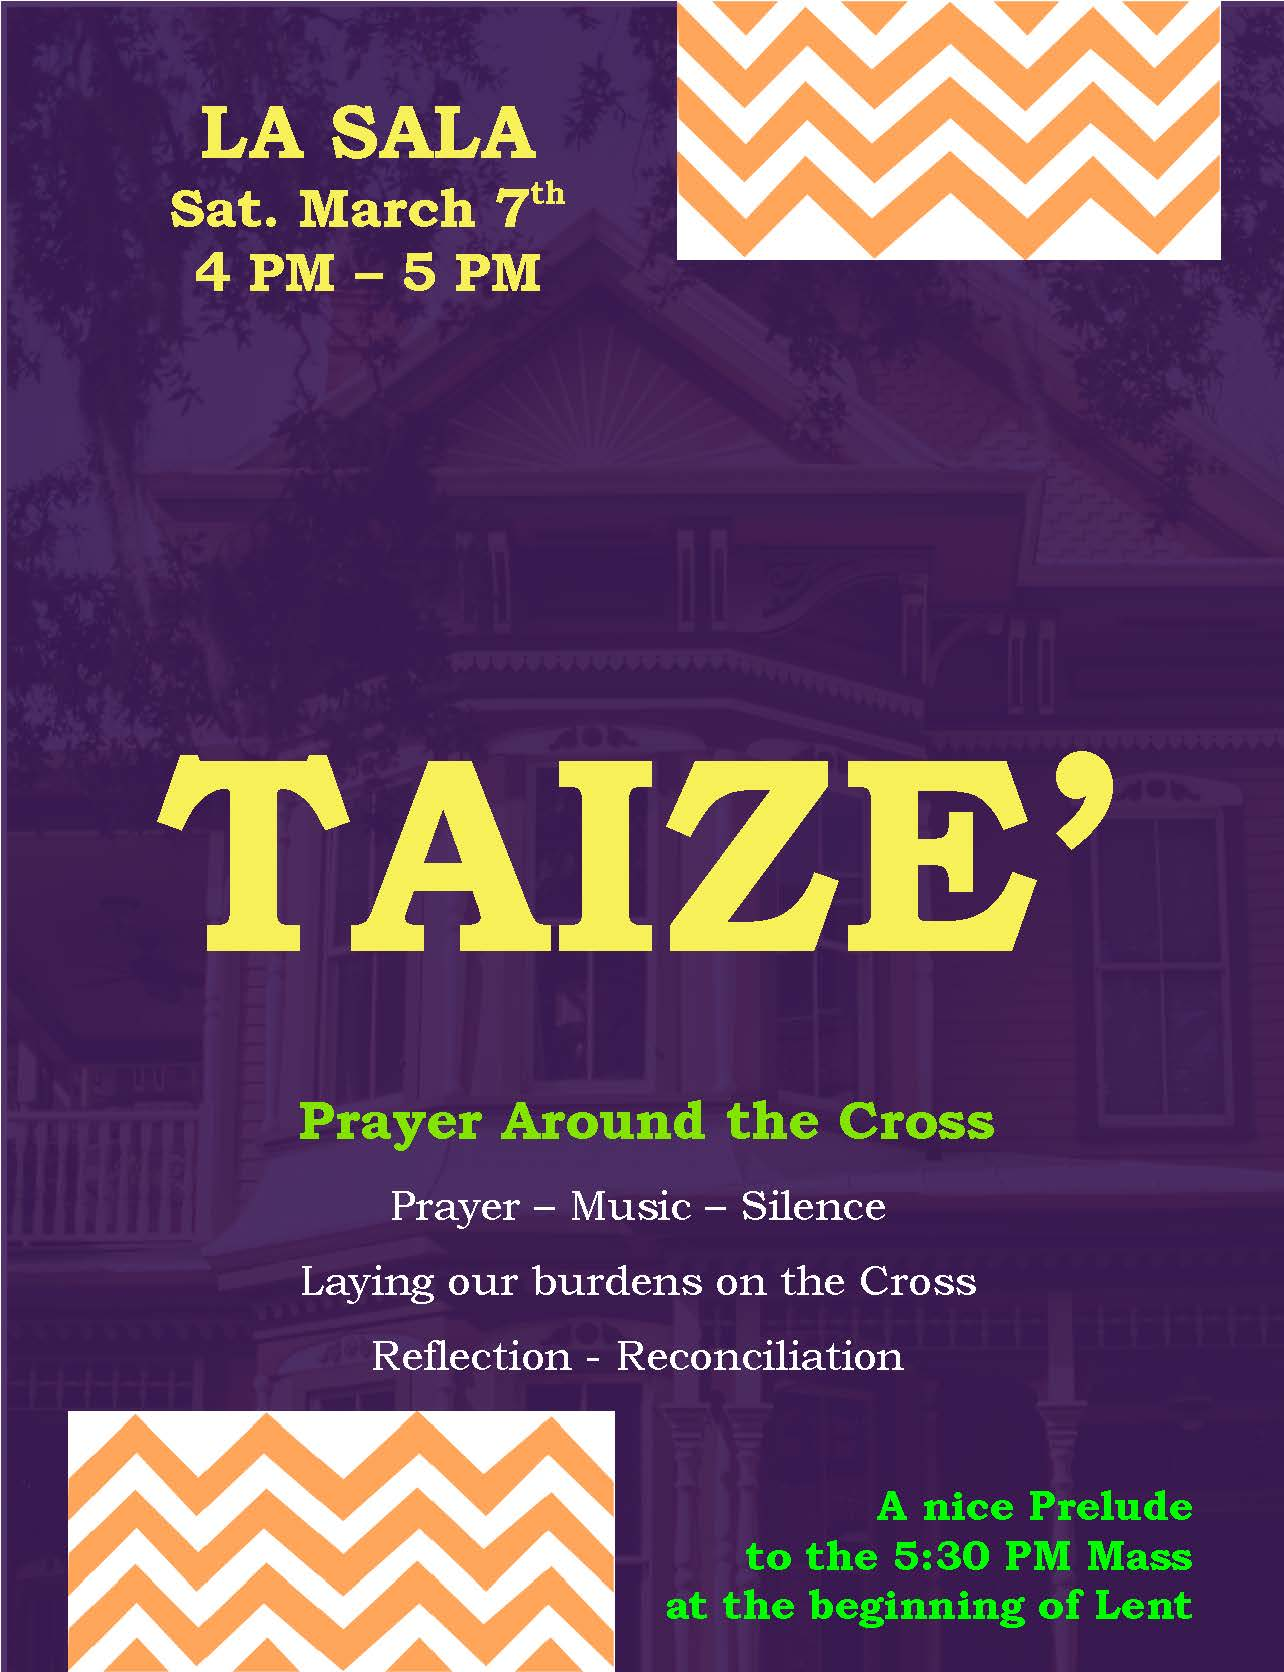 TAIZE - A Lenten Event at the Mission